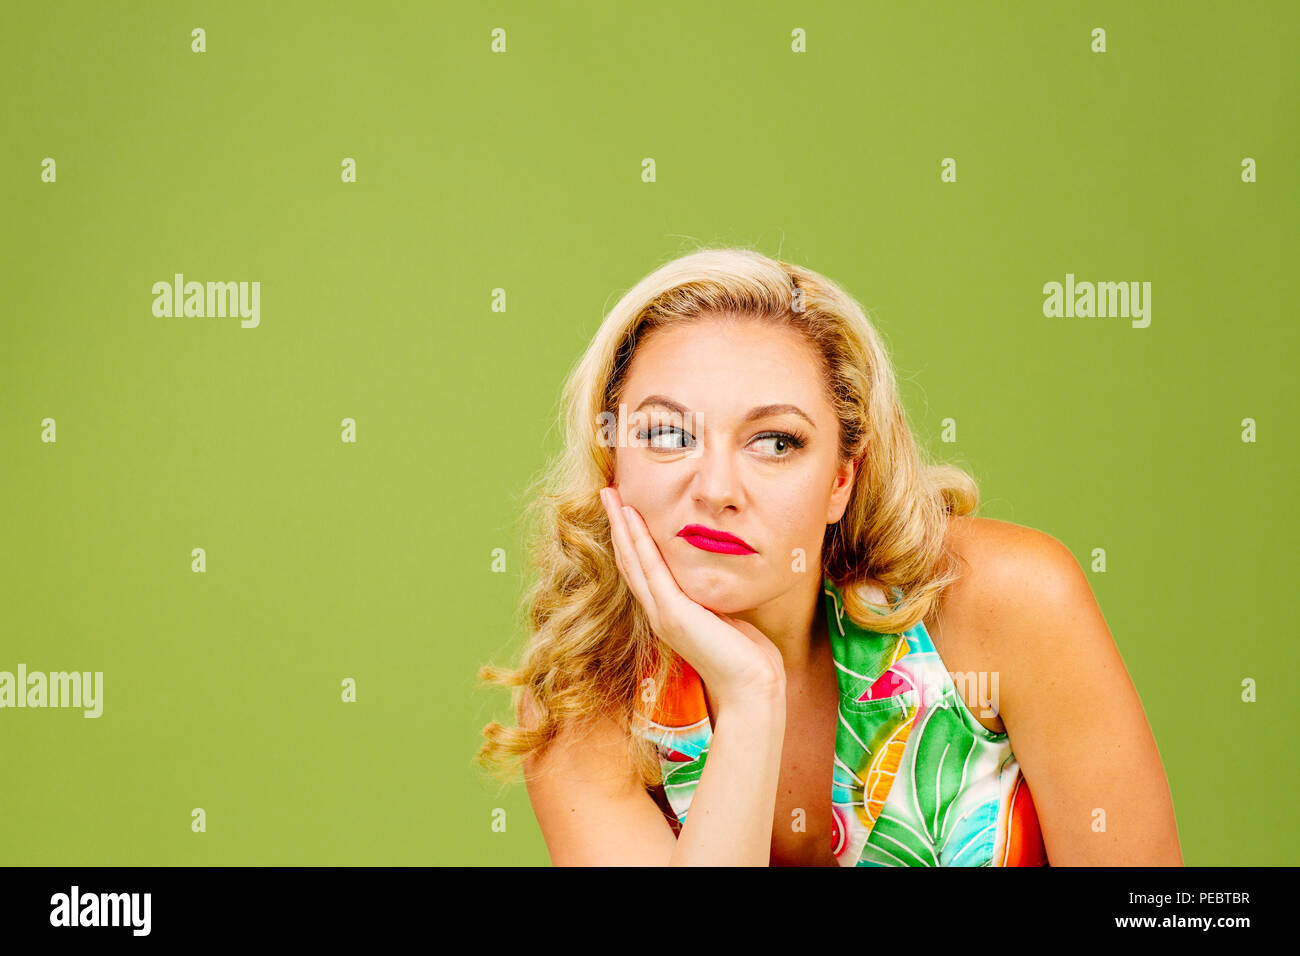 Portrait of an envious woman in bad mood looking right, isolated on green studio background - Stock Image